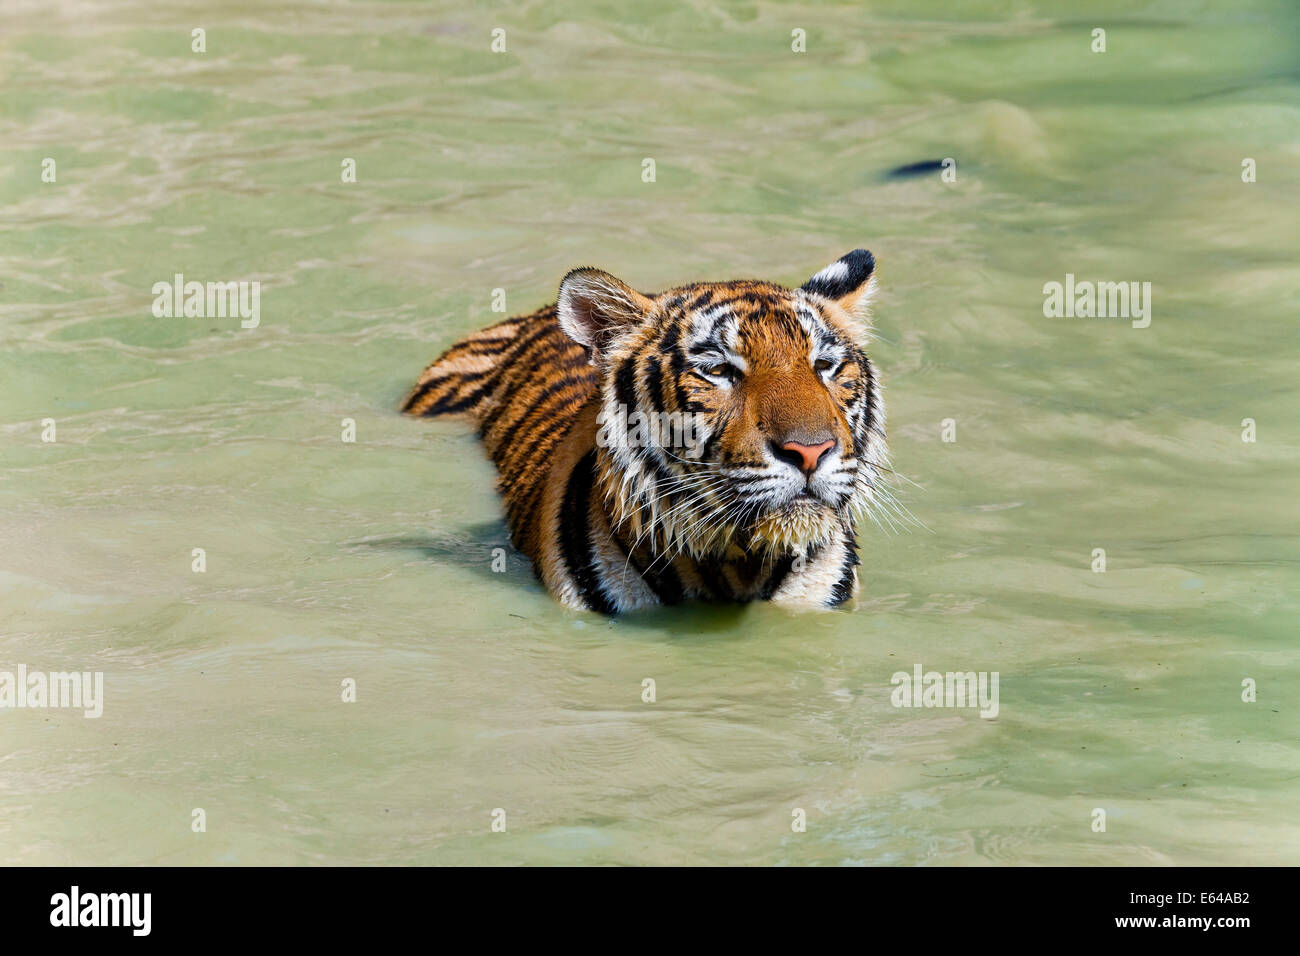 Tigers playing in water, Indochinese tiger or Corbett's tiger (Panthera tigris corbetti), Thailand - Stock Image